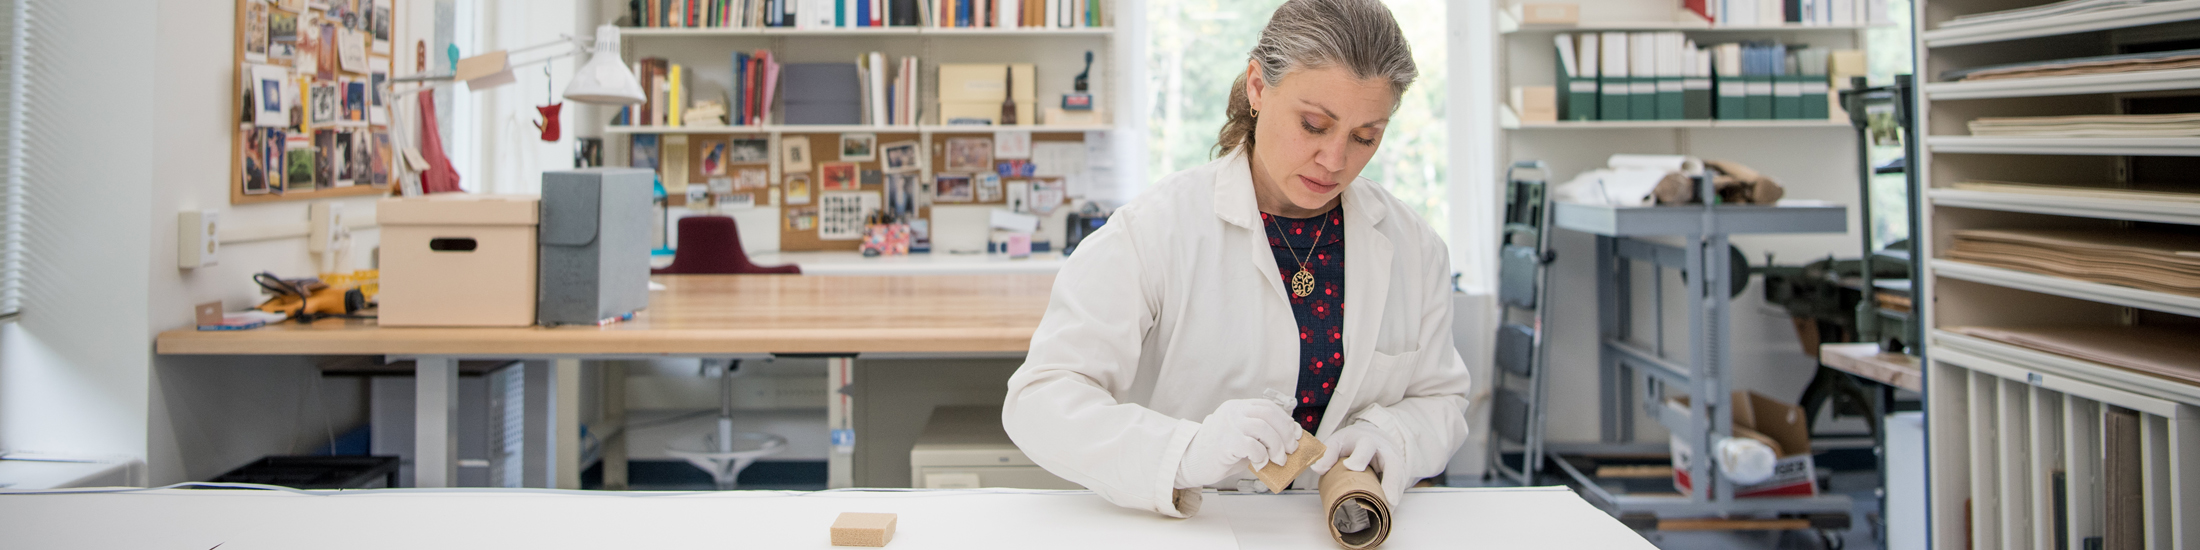 A library conservator works on a project in the conservation lab.